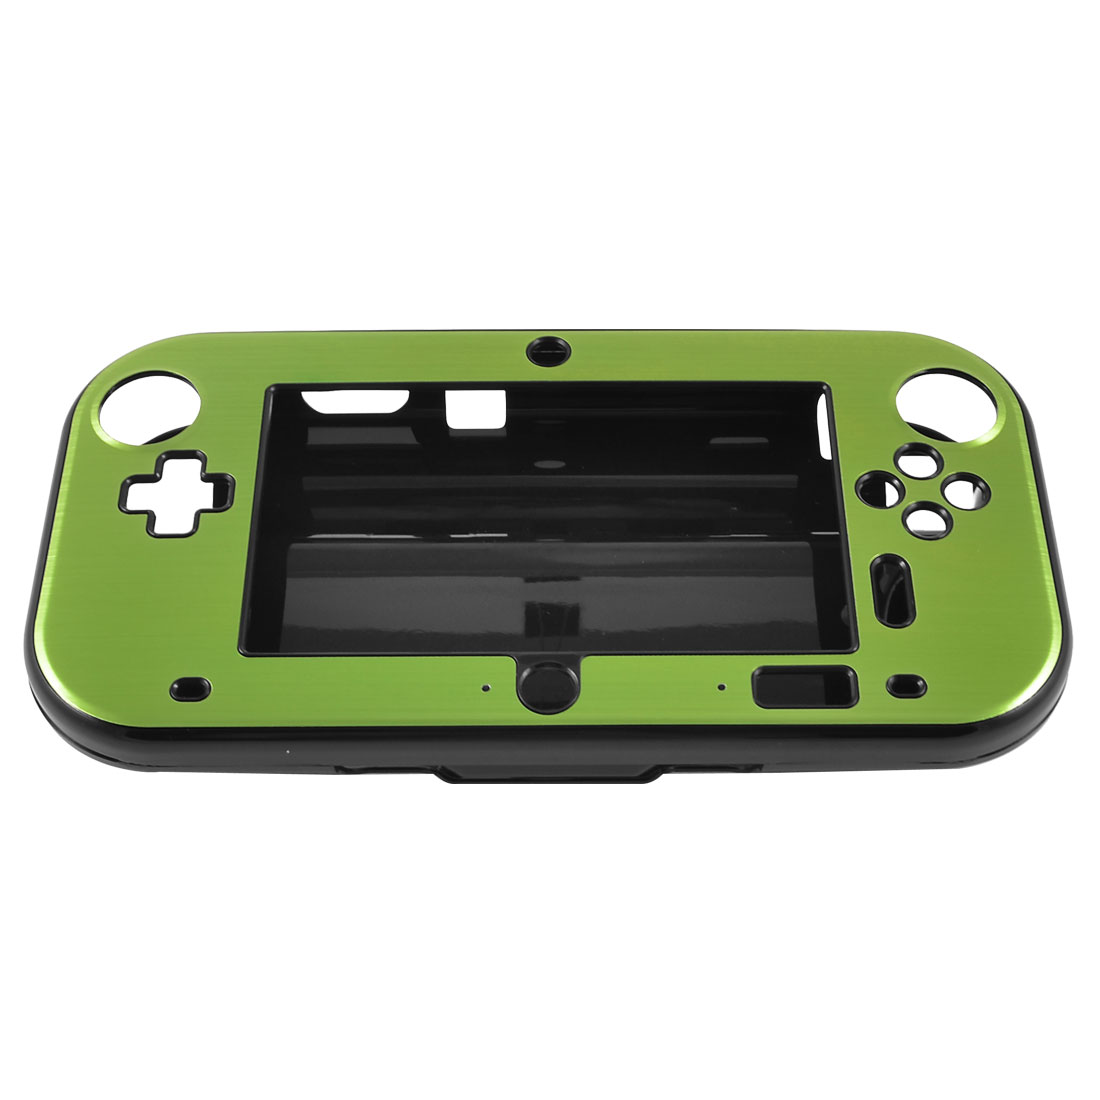 Green Aluminum Coated Black Hard Case Cover for Nintendo Wii U Gamepad